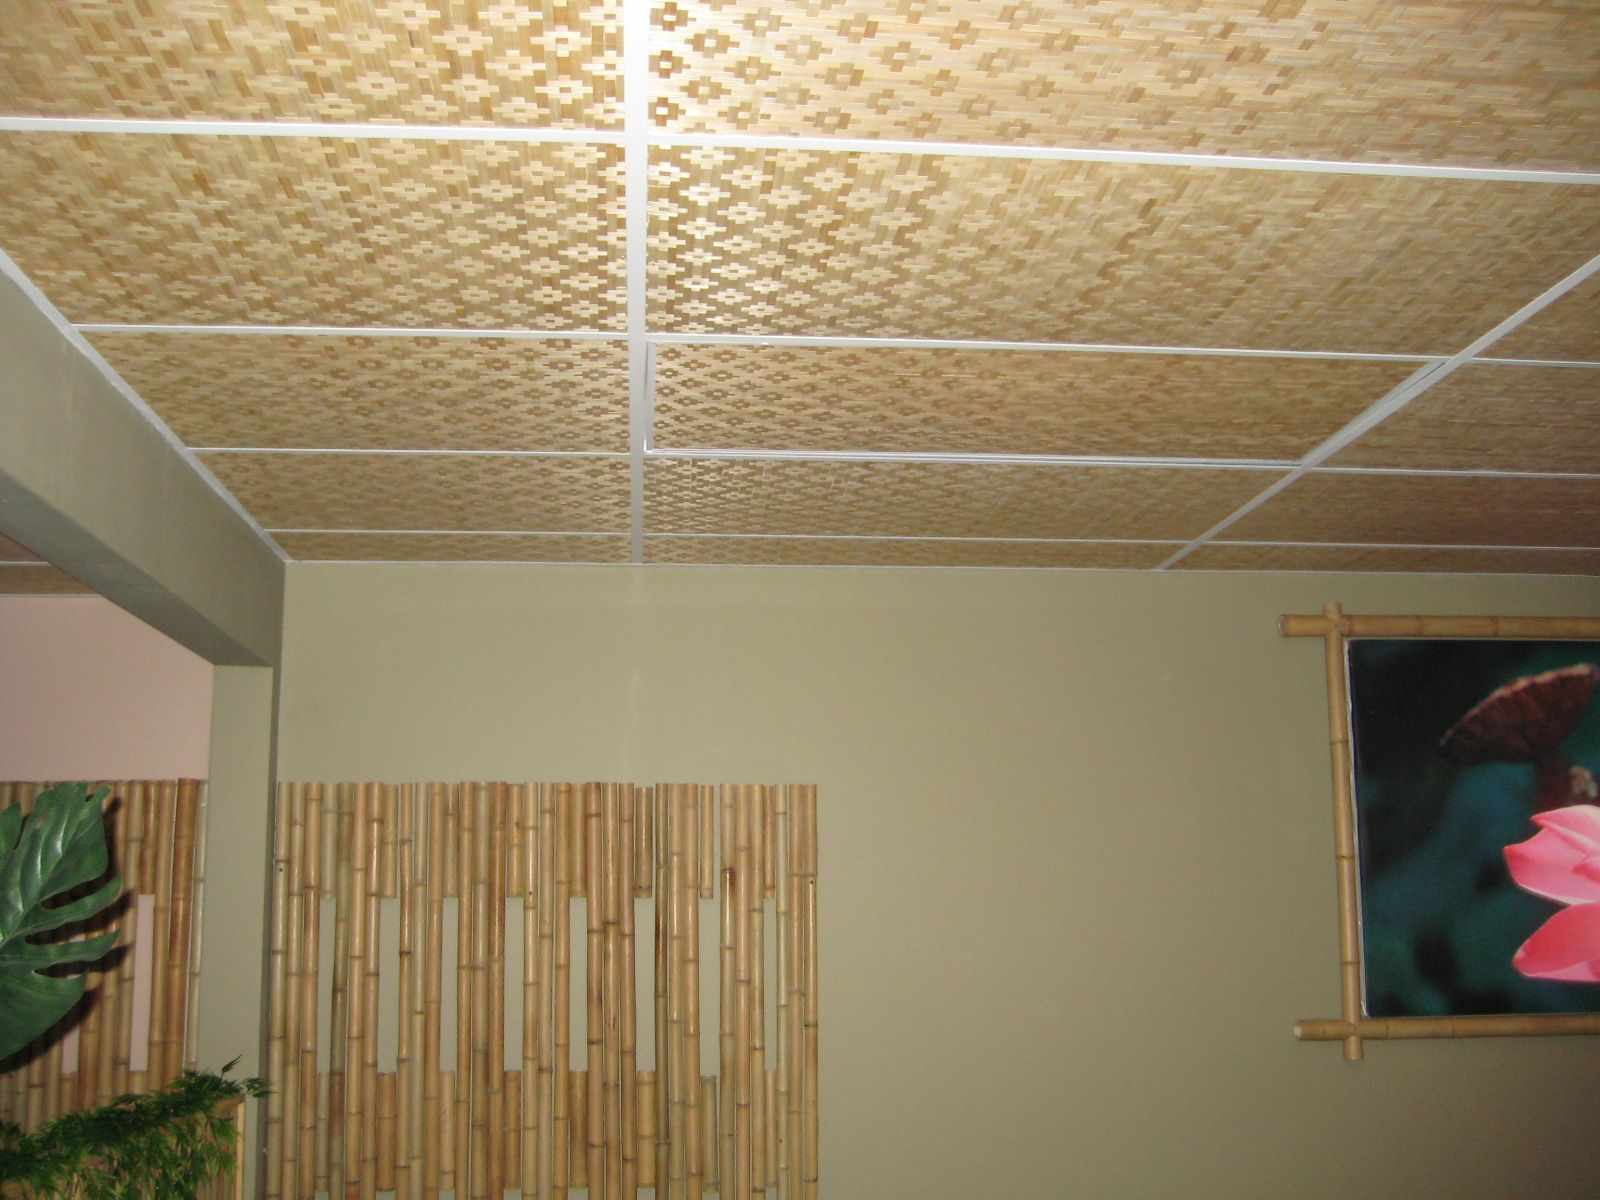 Woven Thatch Ceilings Bamboo Matting For Ceiling Tiles